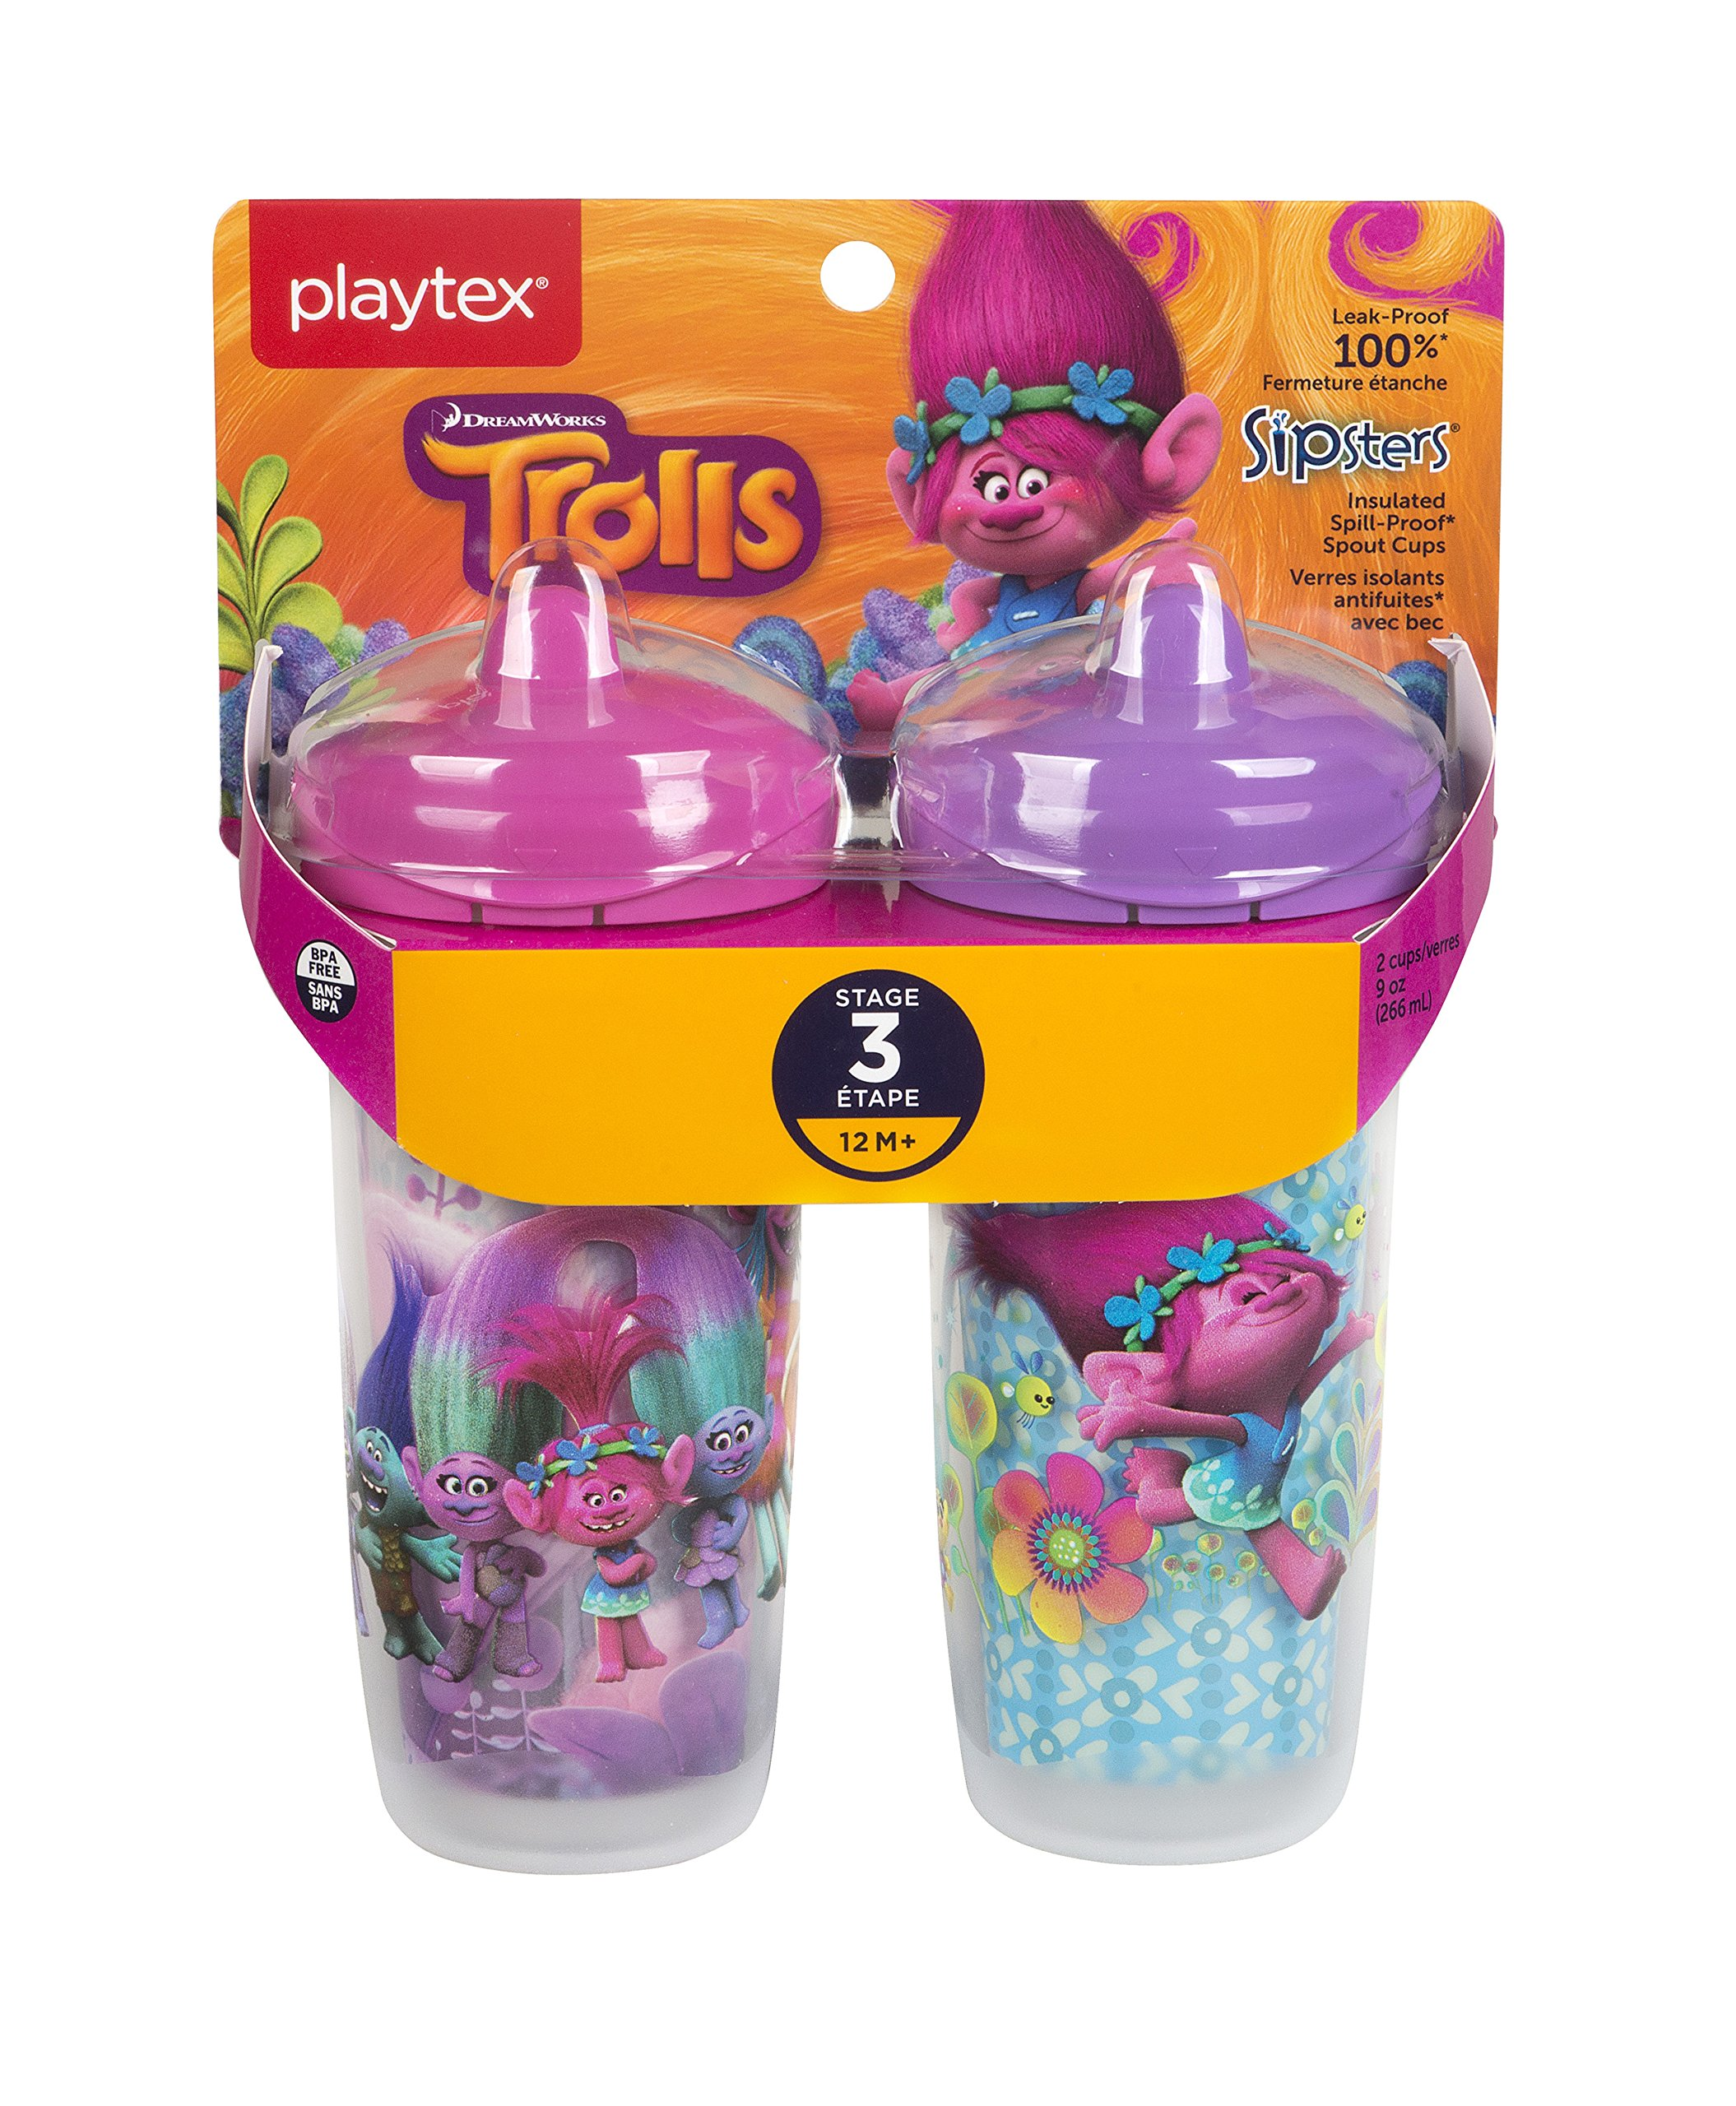 Playtex Sipsters Stage 3 Trolls Insulated Spout Sippy Cup, 9 Ounce, 2 Count by Playtex